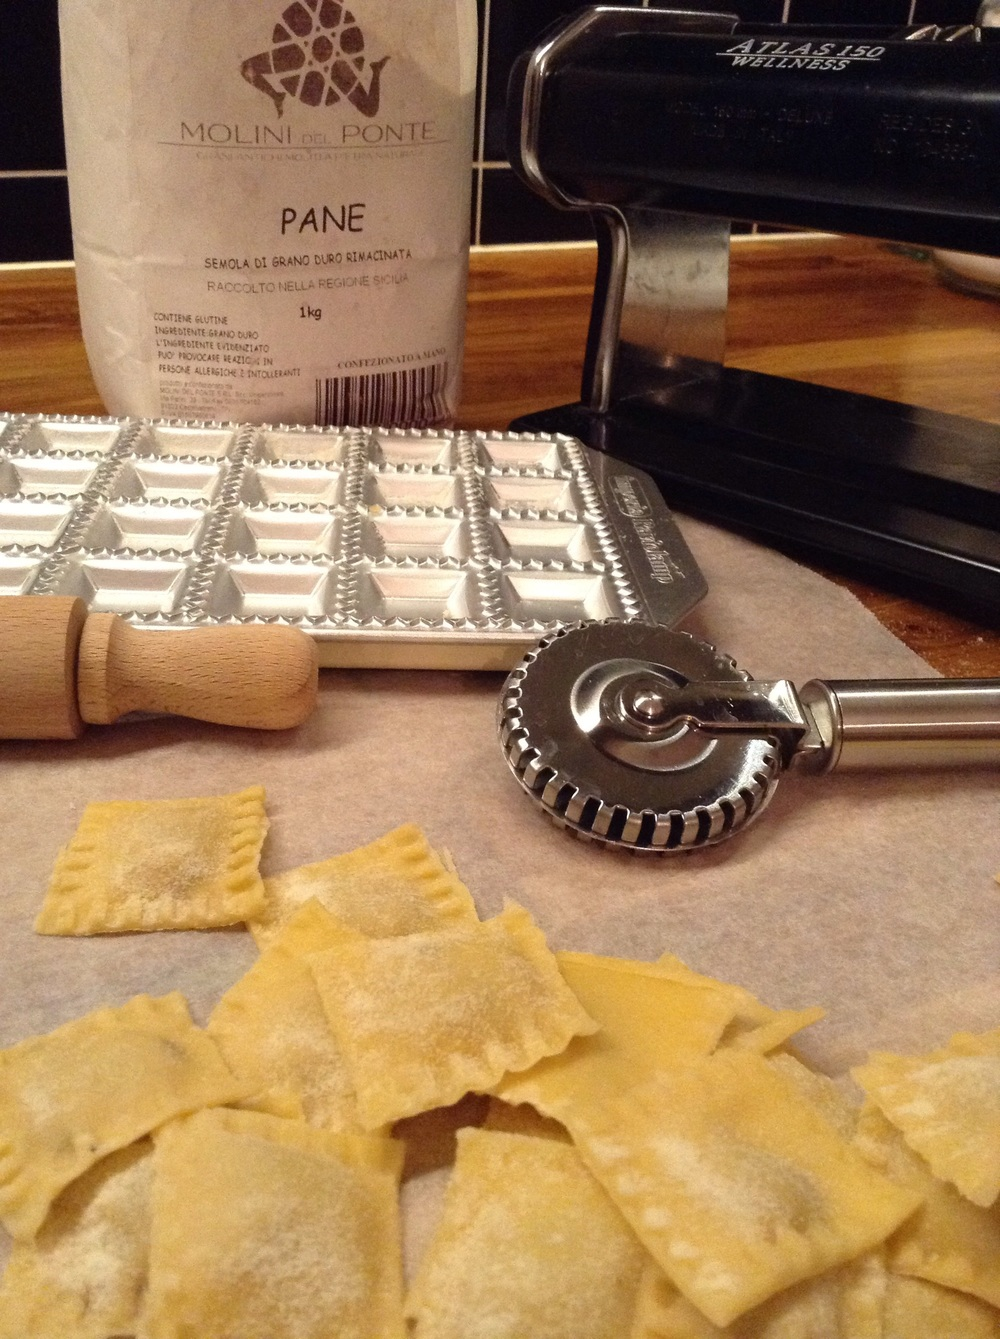 The making of ravioli